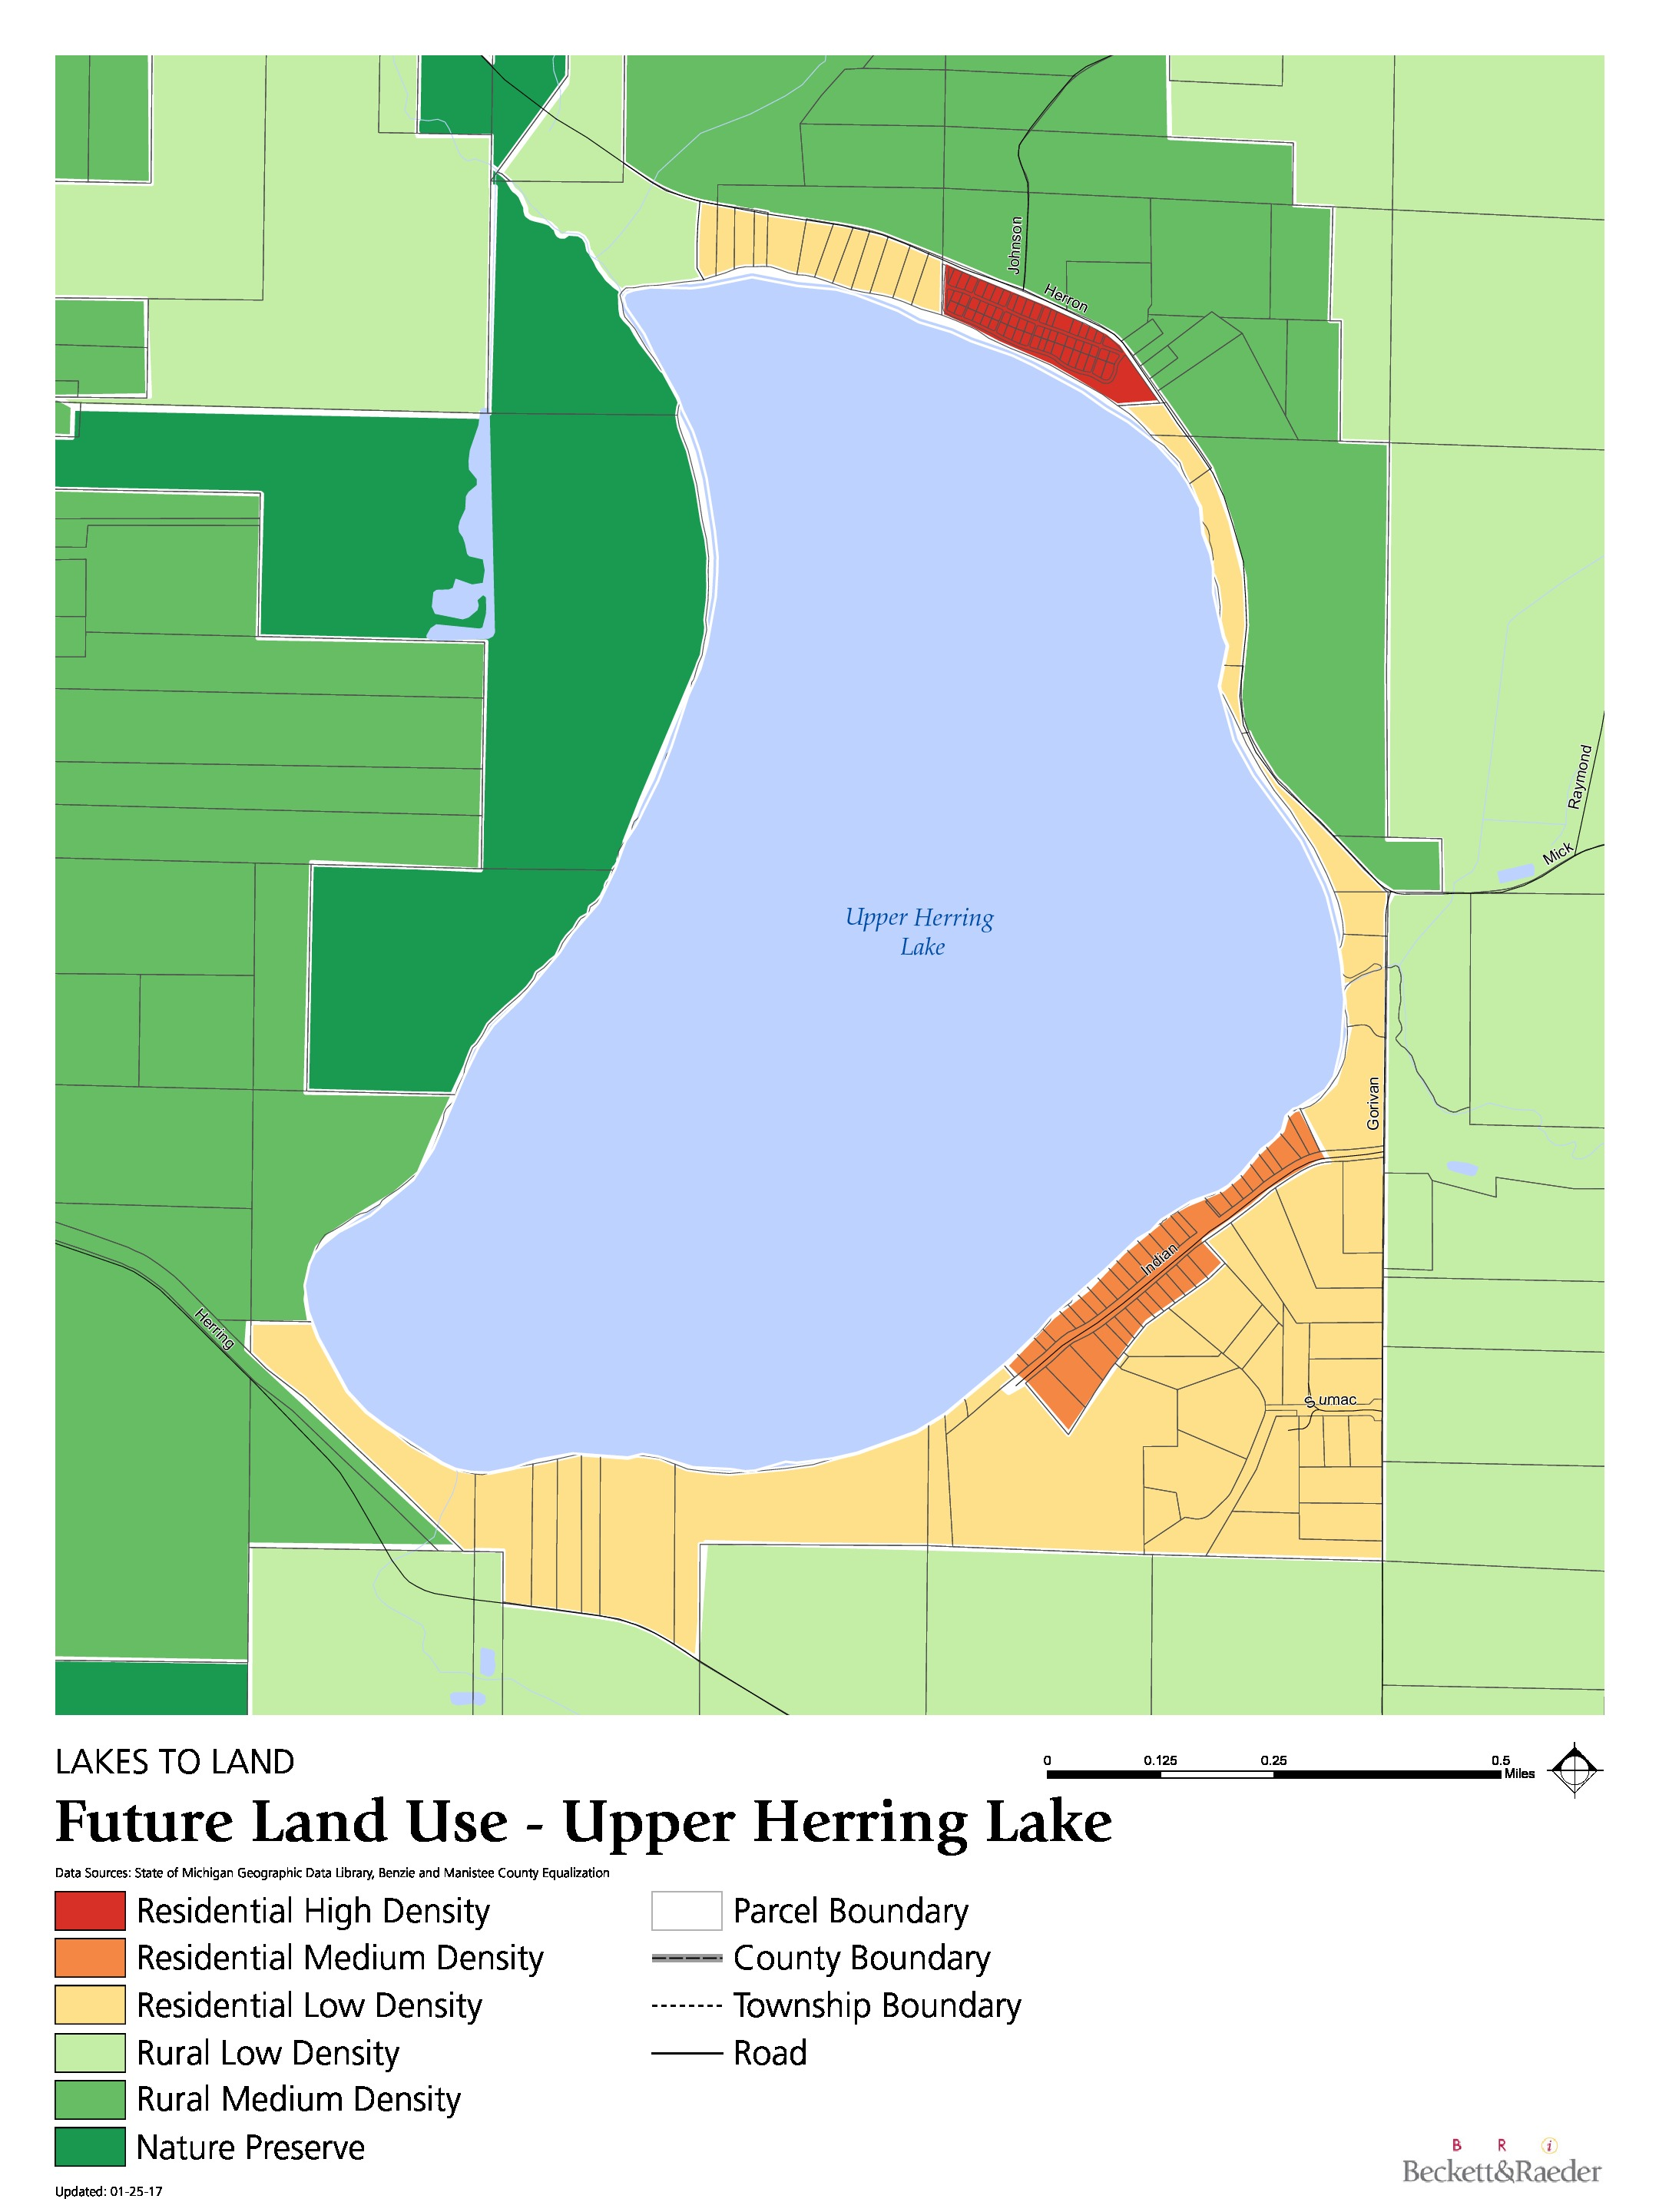 Future Land Use - Upper Herring Lake